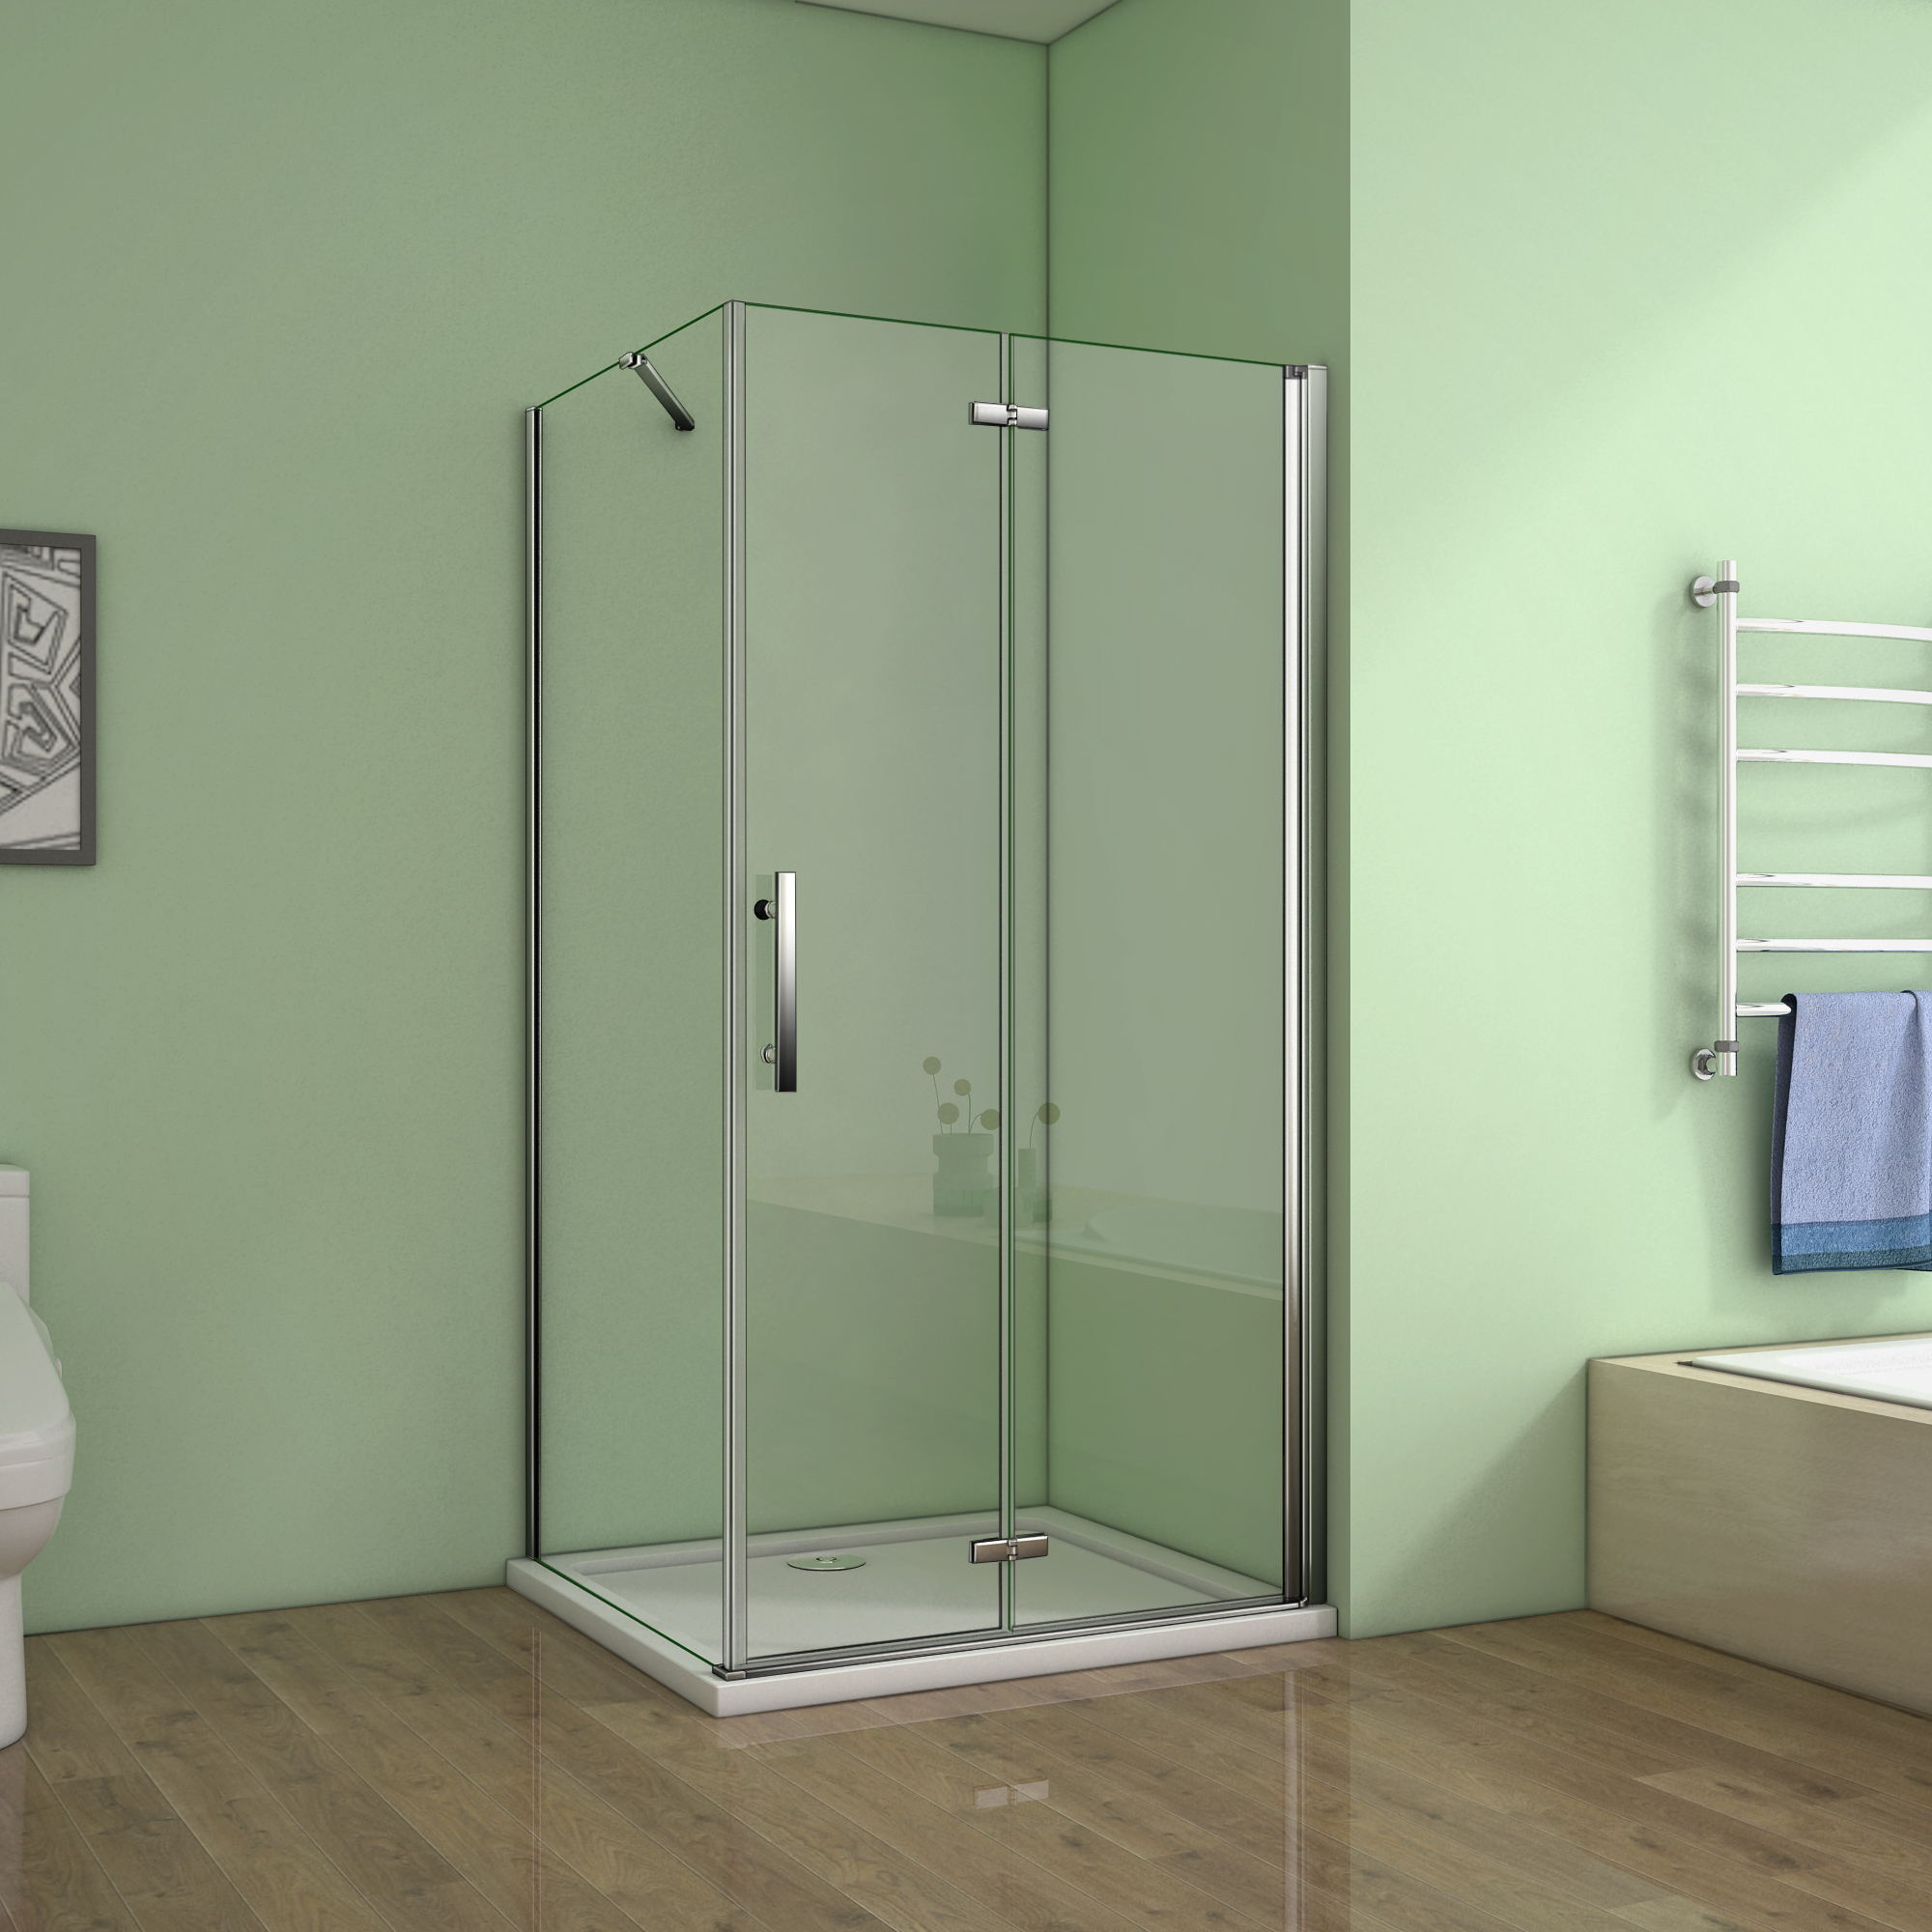 Details About Frameless Pivot Bifold Hinge Shower Enclosure Glass Cubicle Door Panel Tray Hpw